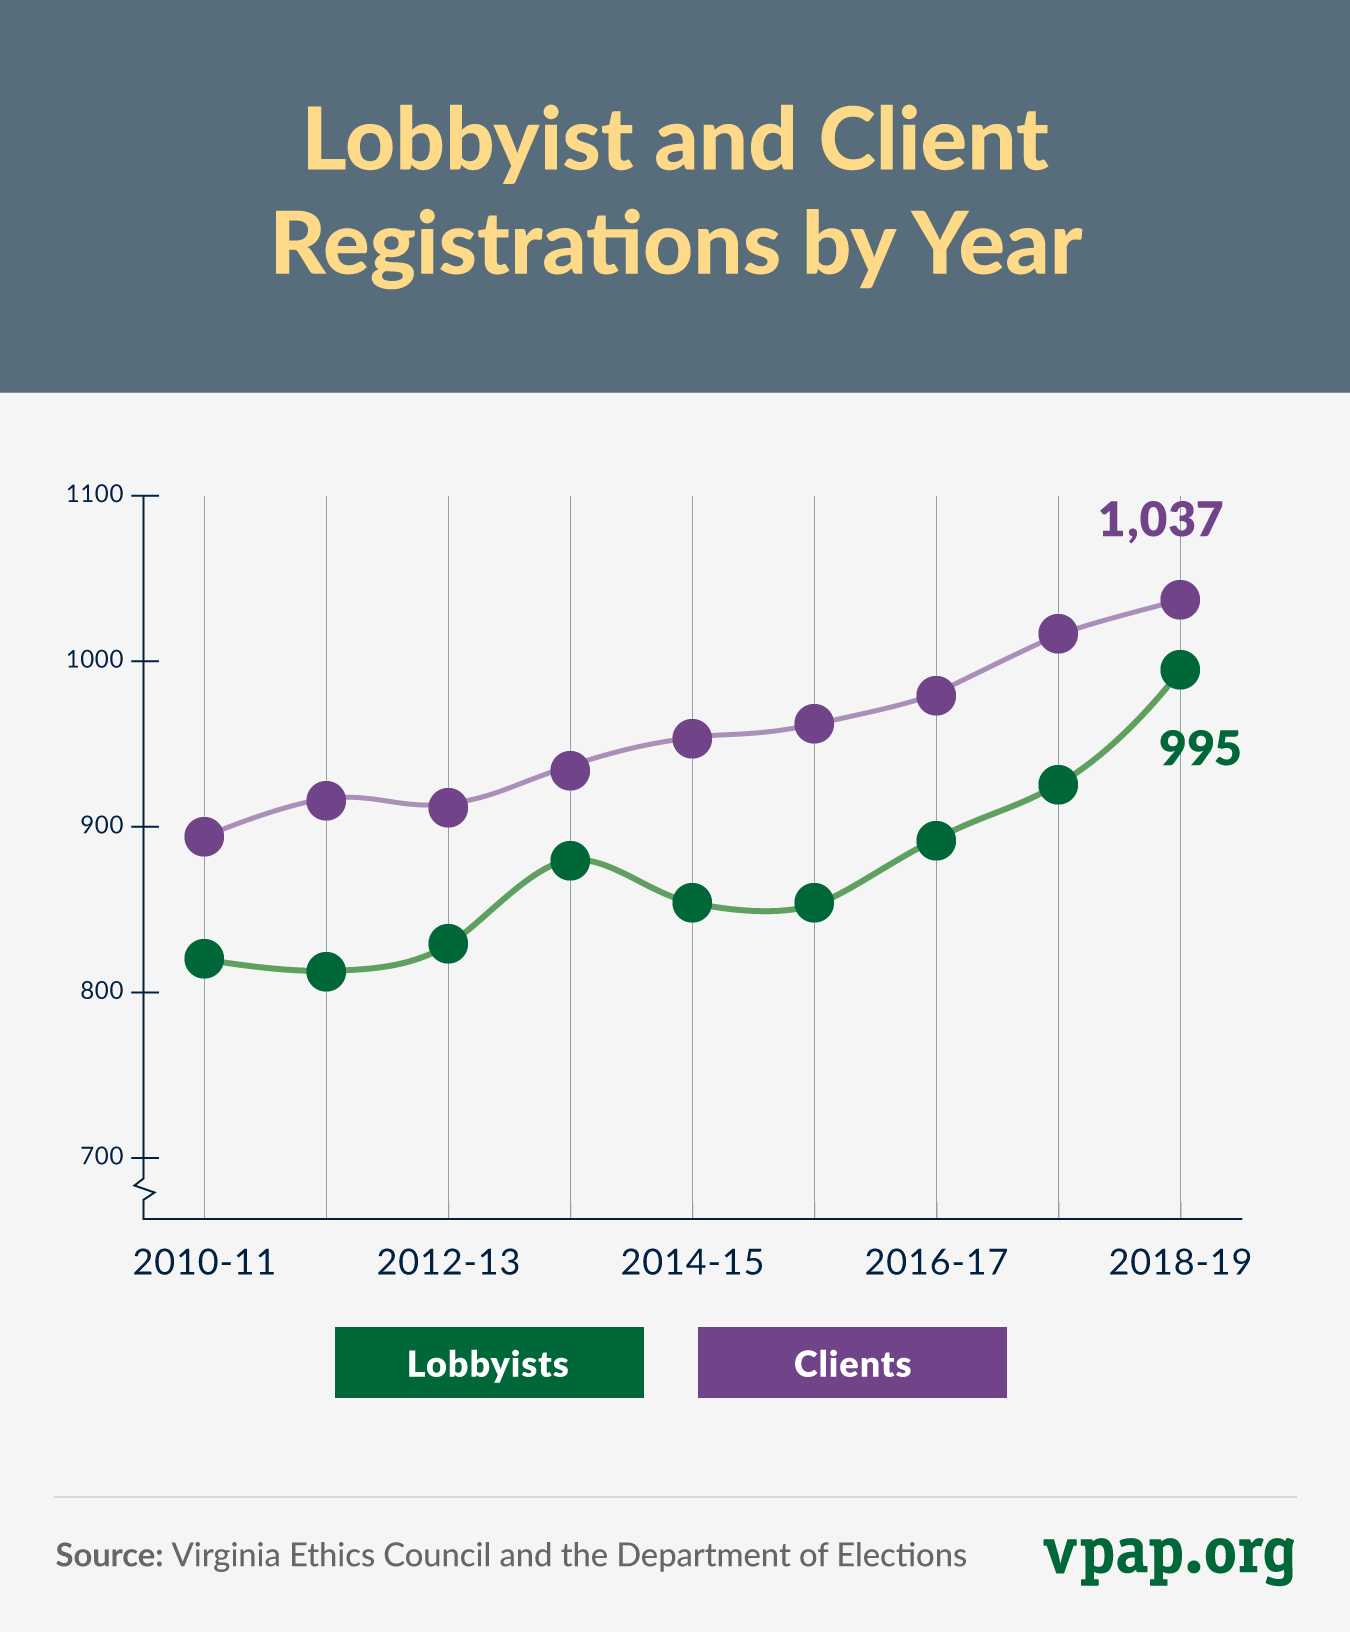 Lobbyist and Client Registrations by Year